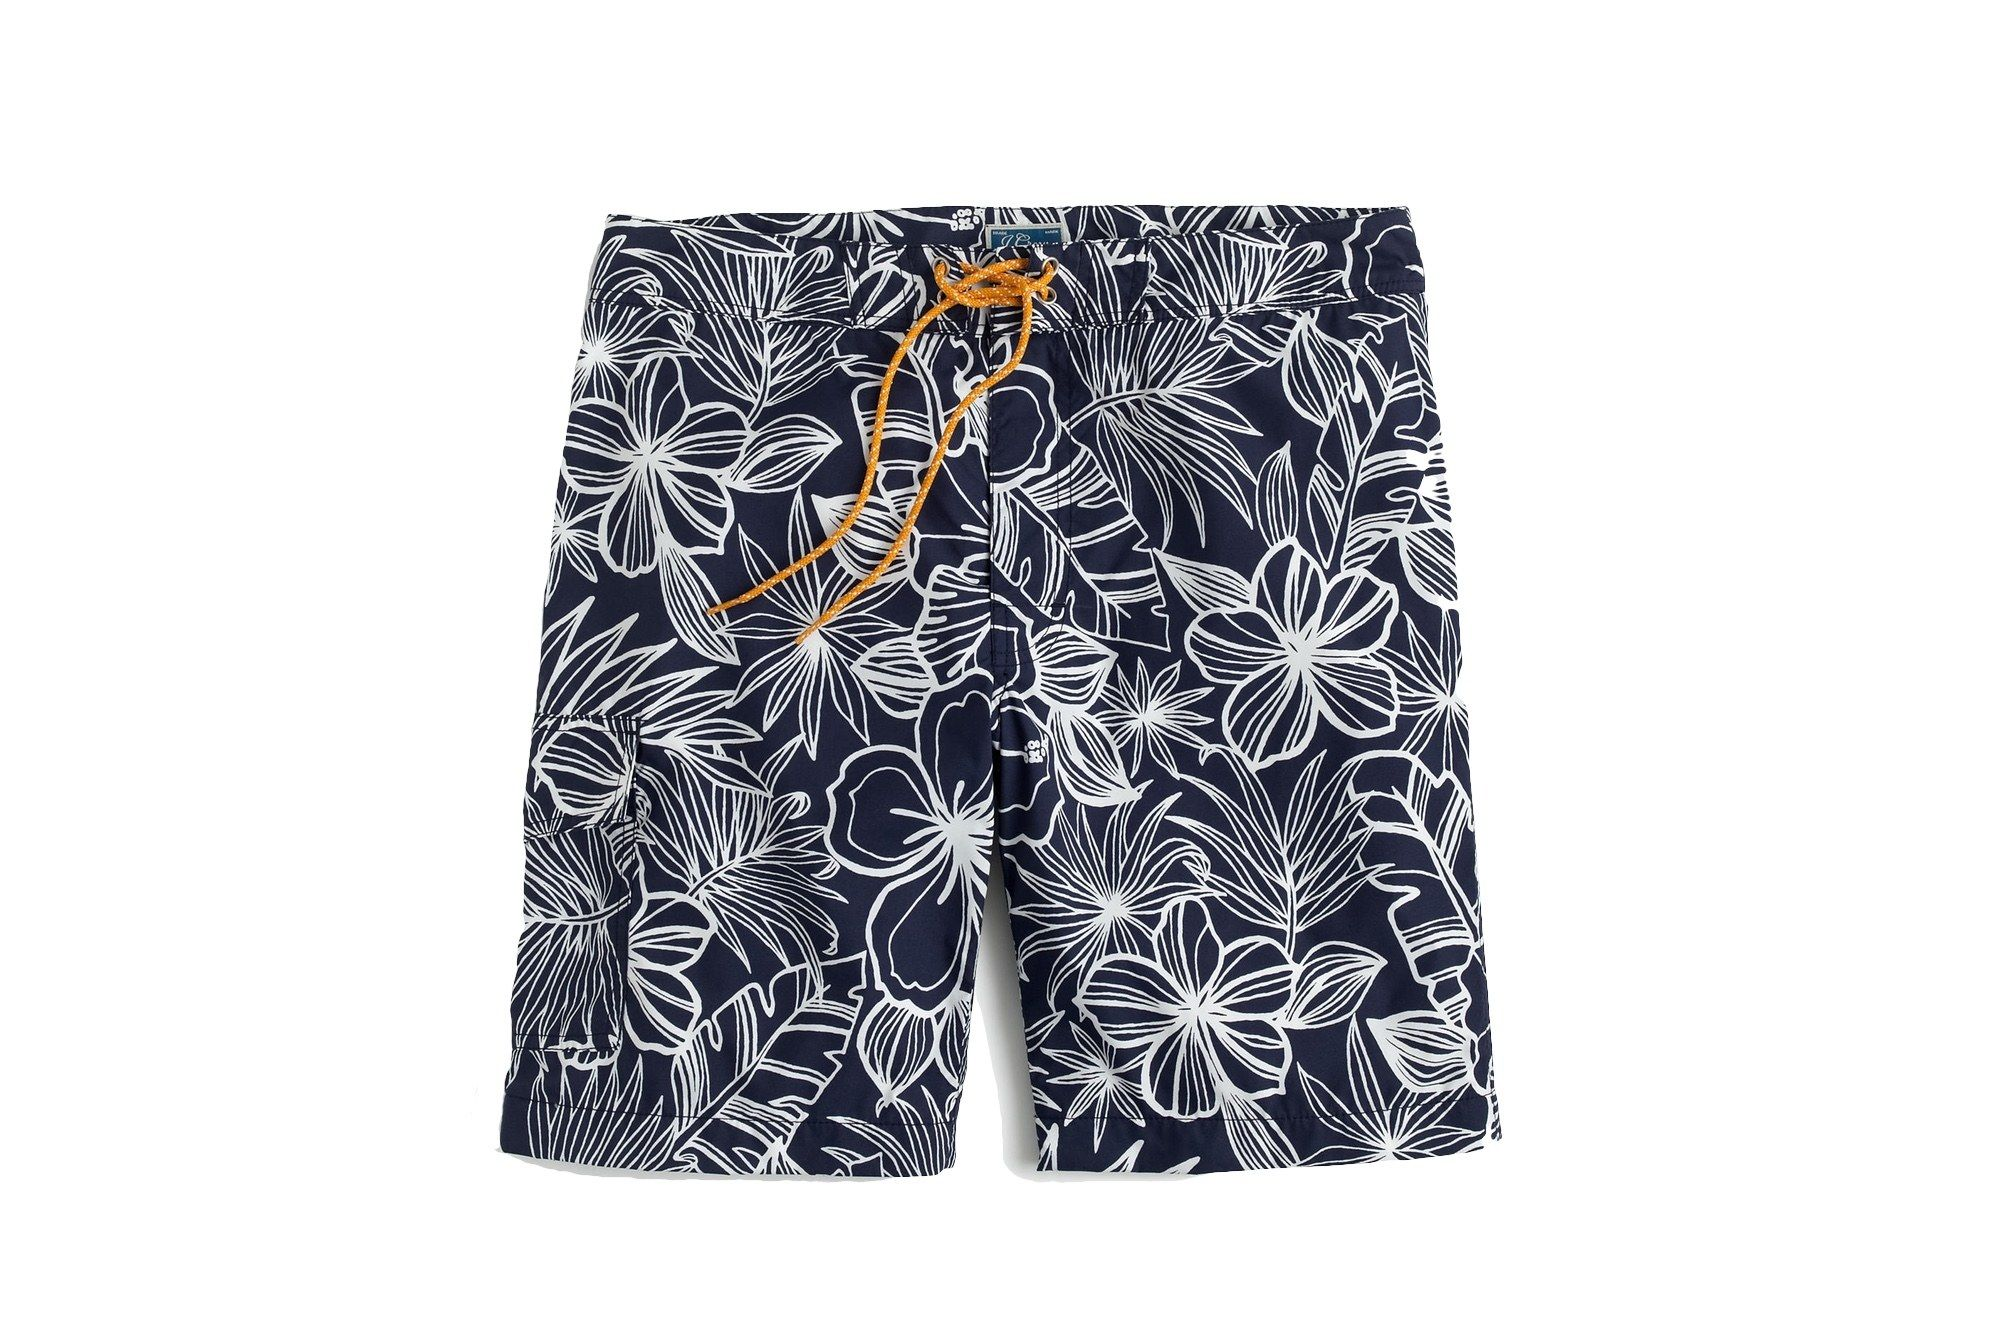 bbd0ba6fbb 10 Pairs of Ab-Flattering Board Shorts (Yes, They Exist) | Vacation ...